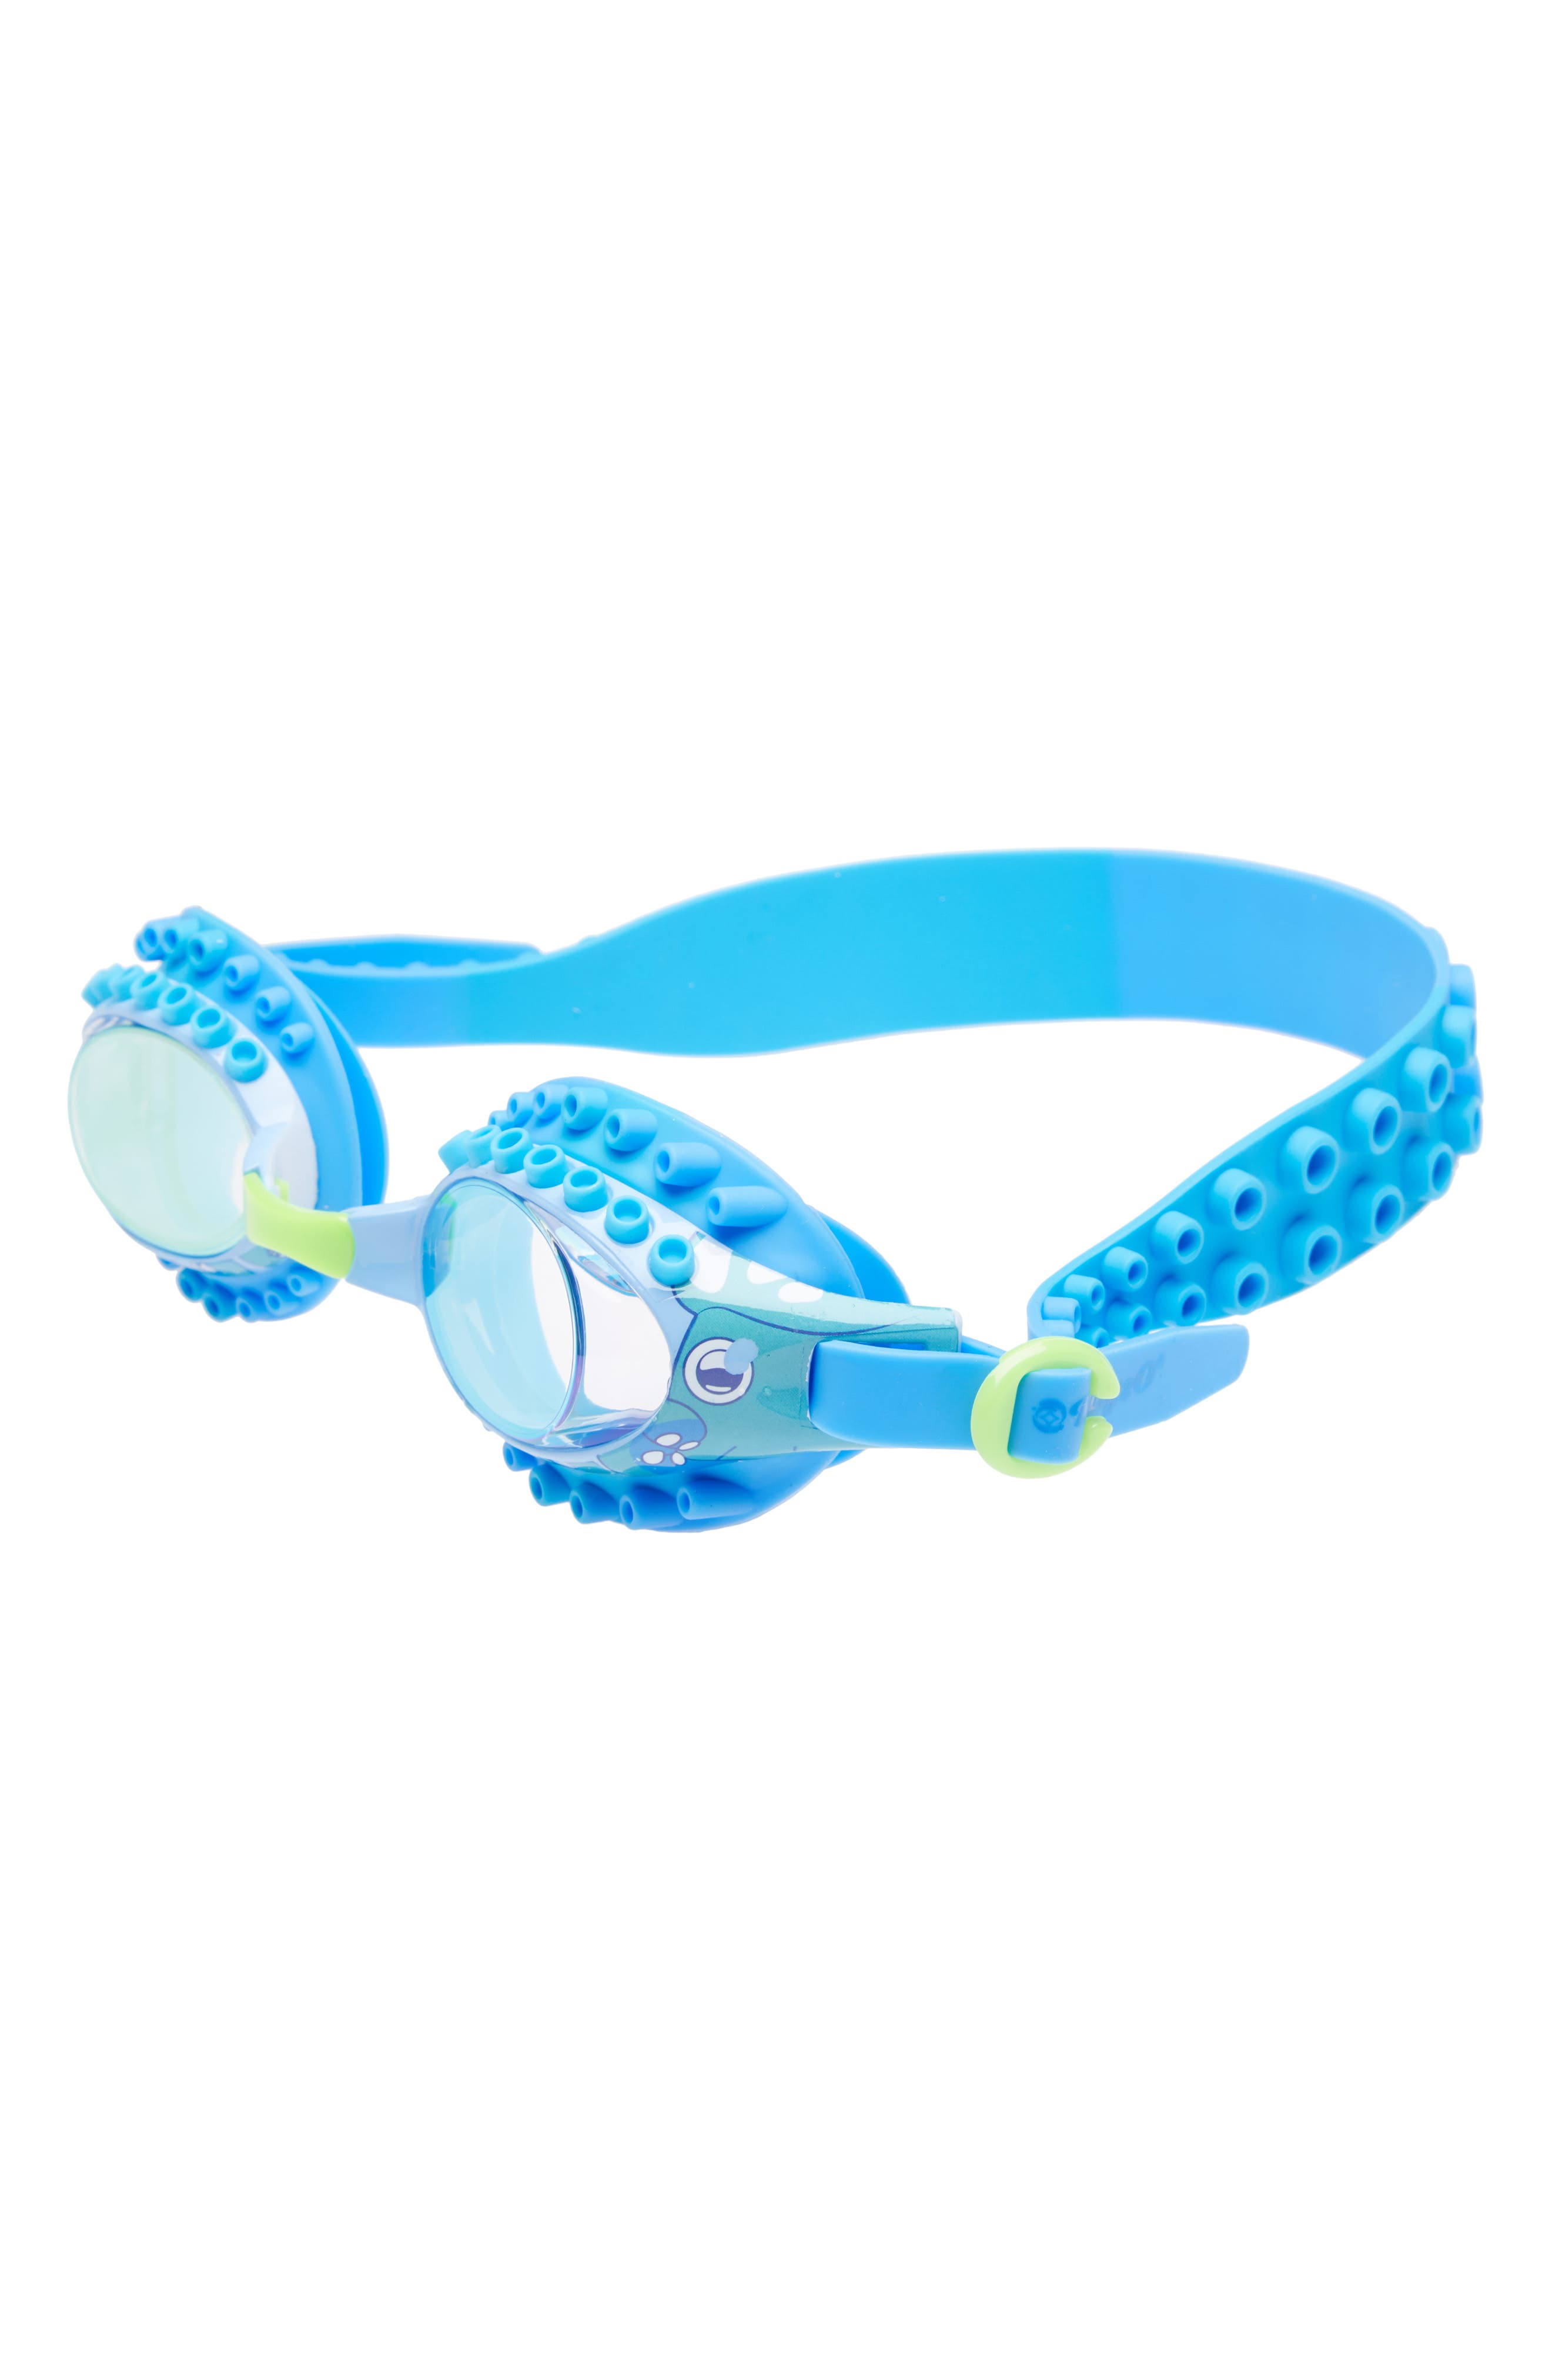 Bling2o Octopus Swim Goggles (Kids)